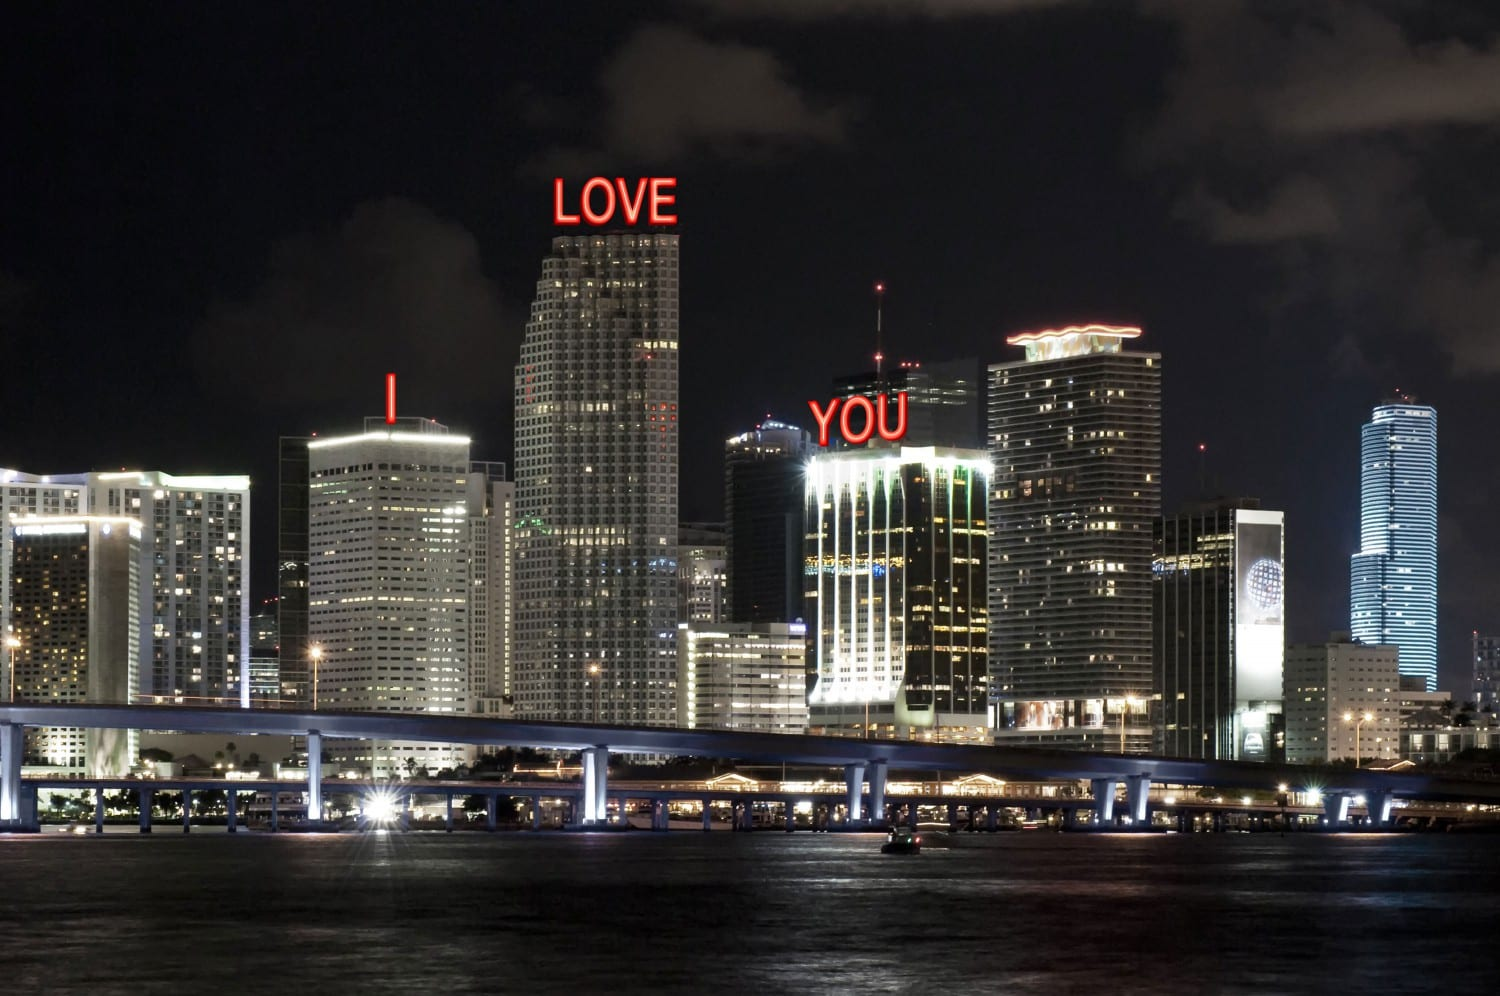 R & R Studios, Roberto Behar, Rosario Marquardt, Georgy John, Miami, Downtown Miami, I Love You, Public Art, Sign, Monument